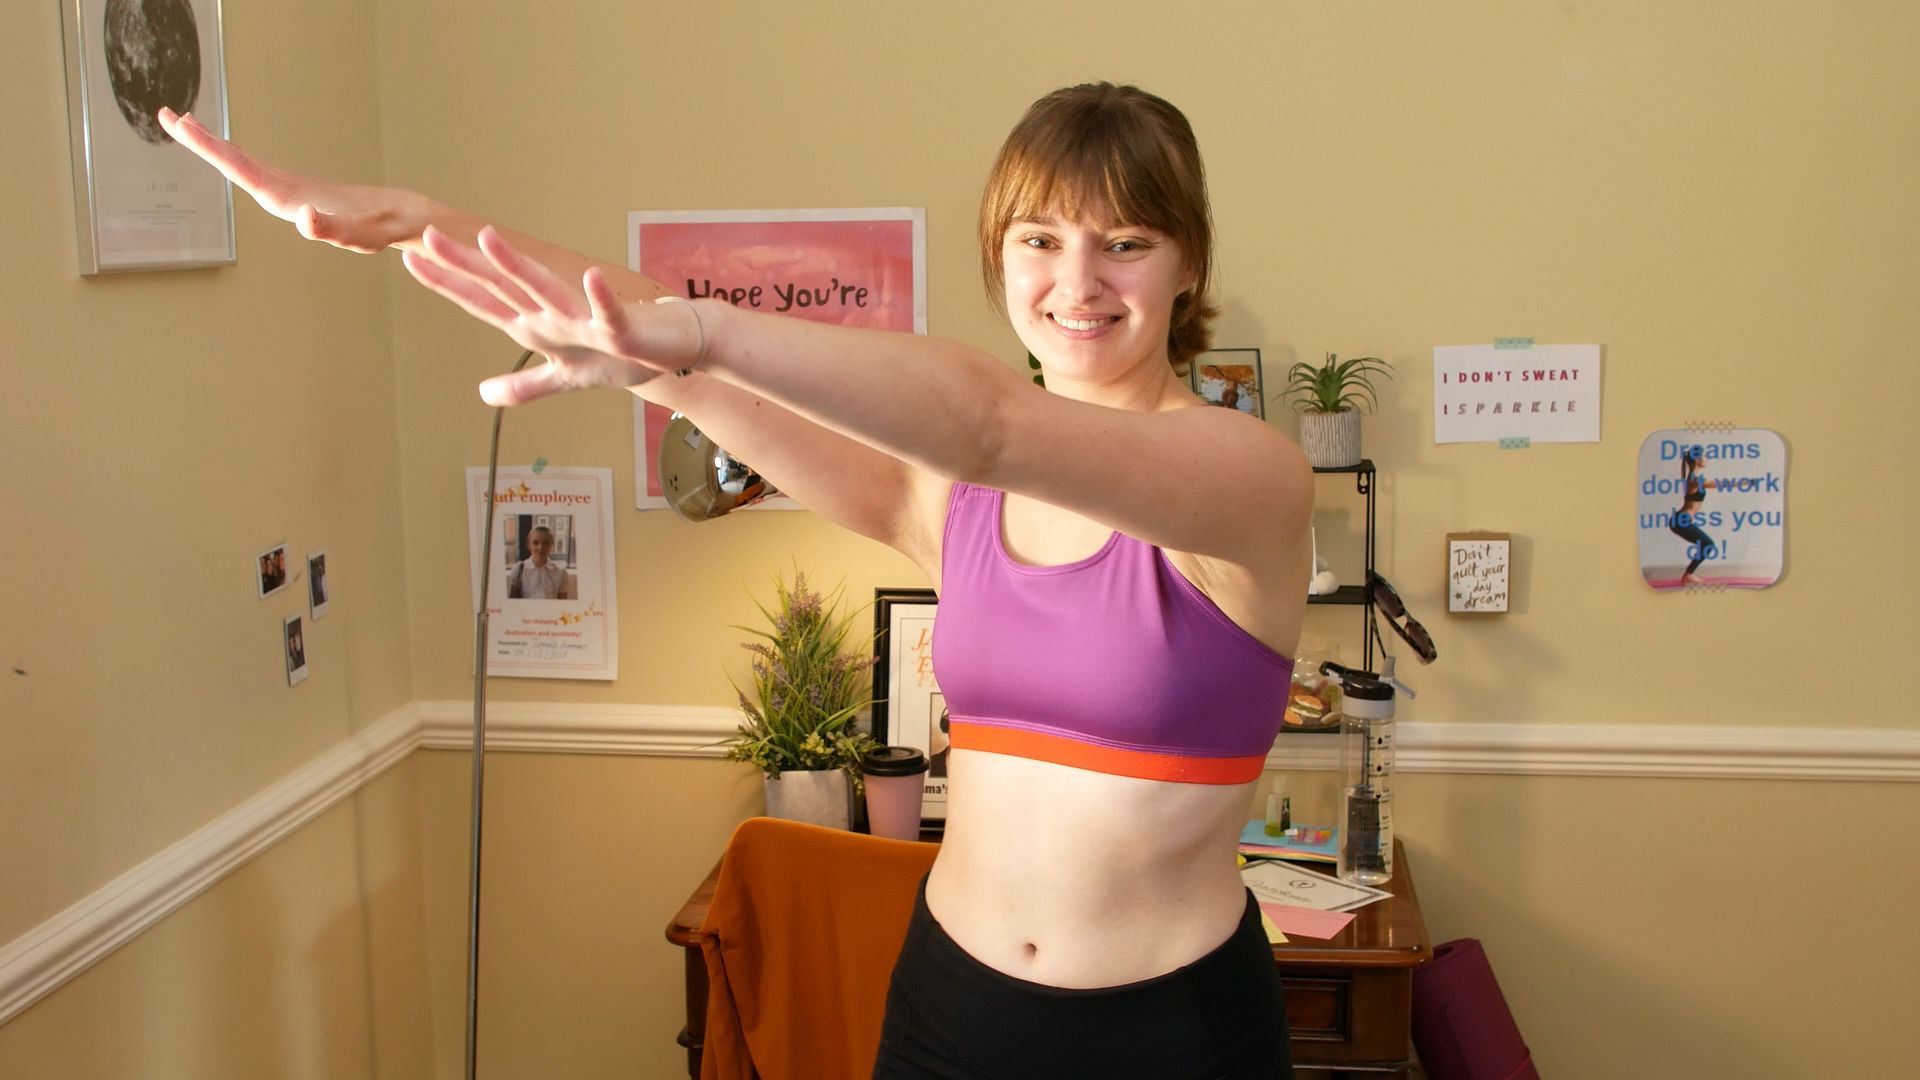 Still from short film Jargon Fitness, produced by Movement Films and Cardboard Moon Pictures showing actor Jess Balmer